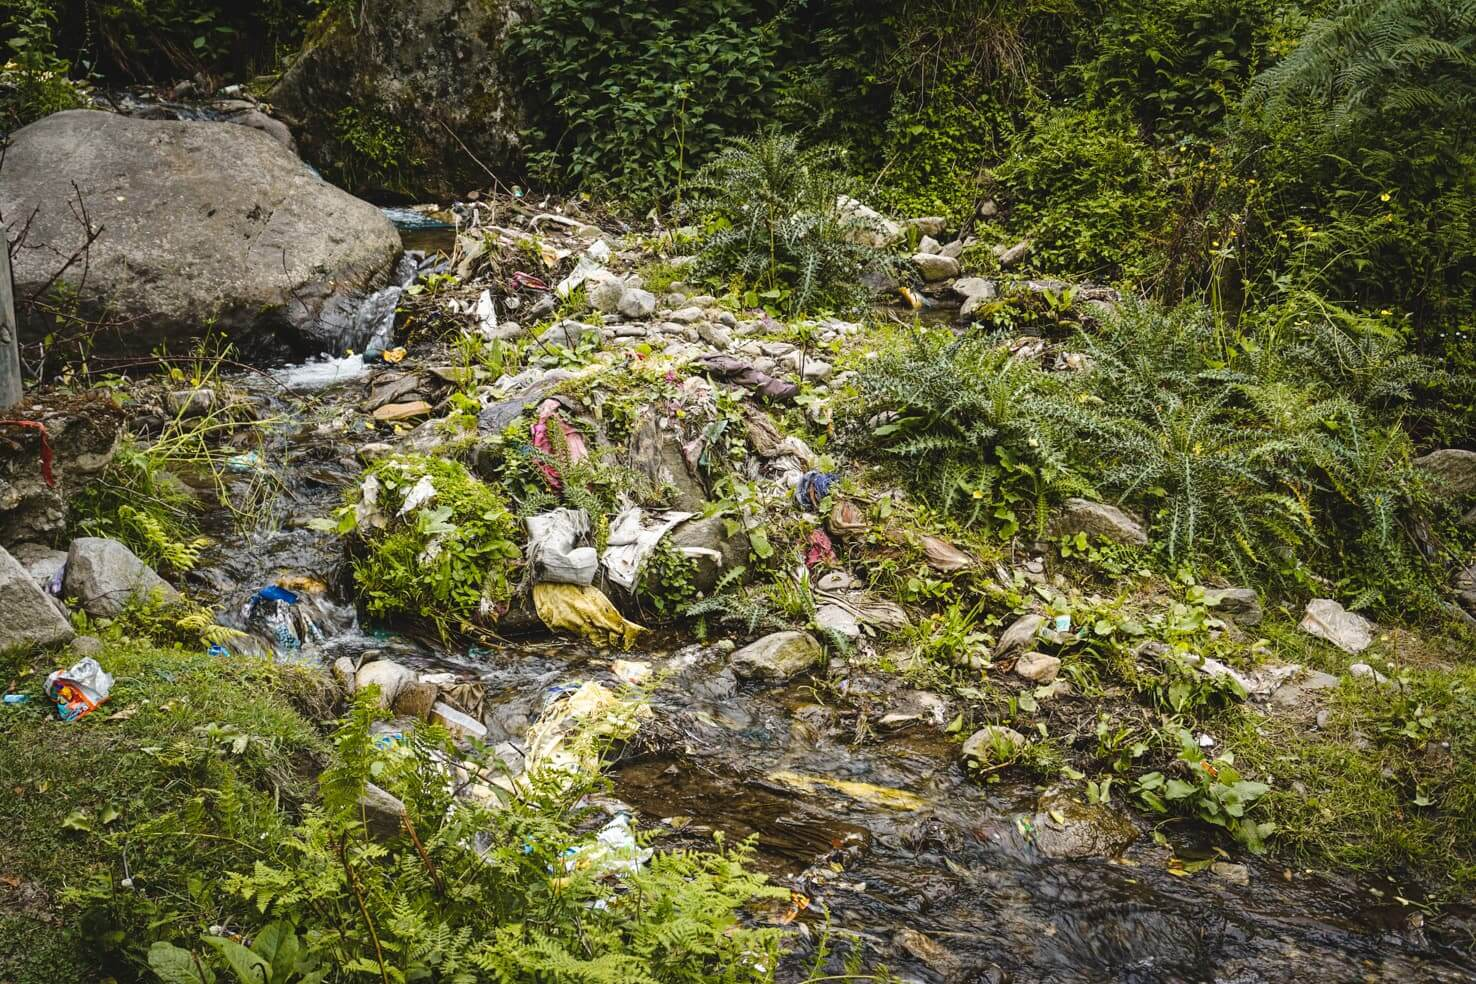 How to be a responsible traveler - Manali, India